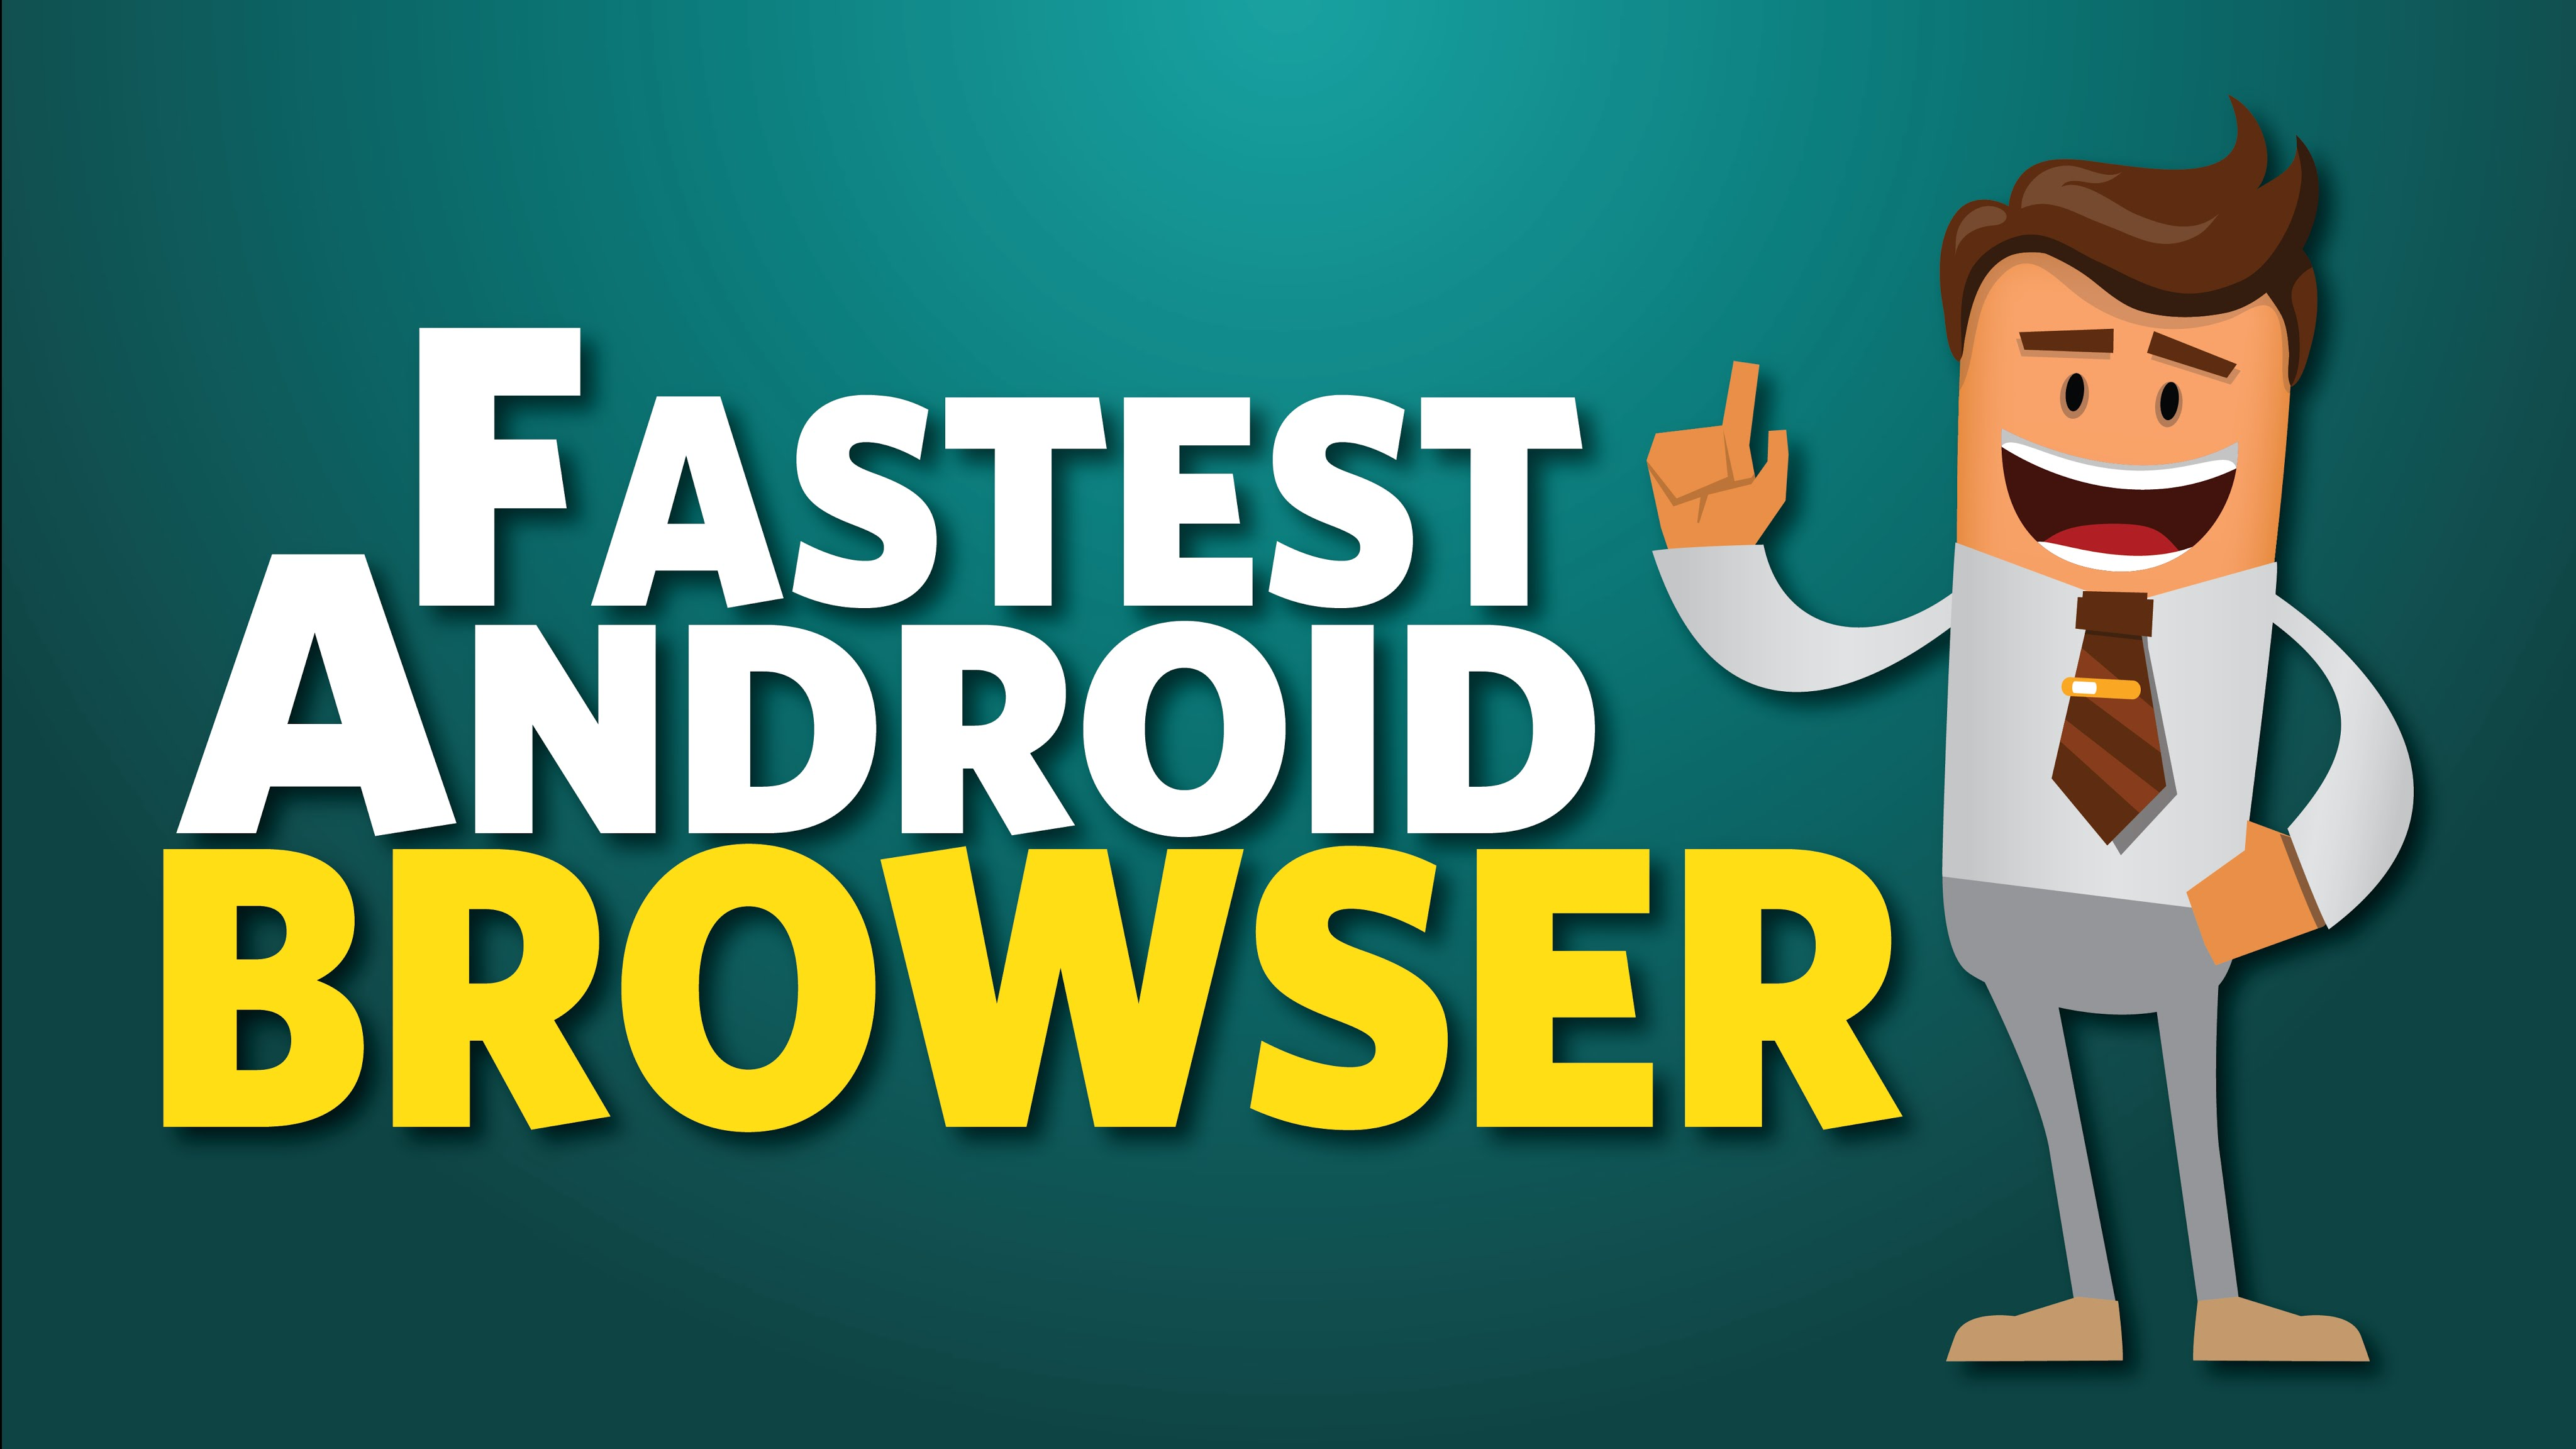 Fastest Android Browser